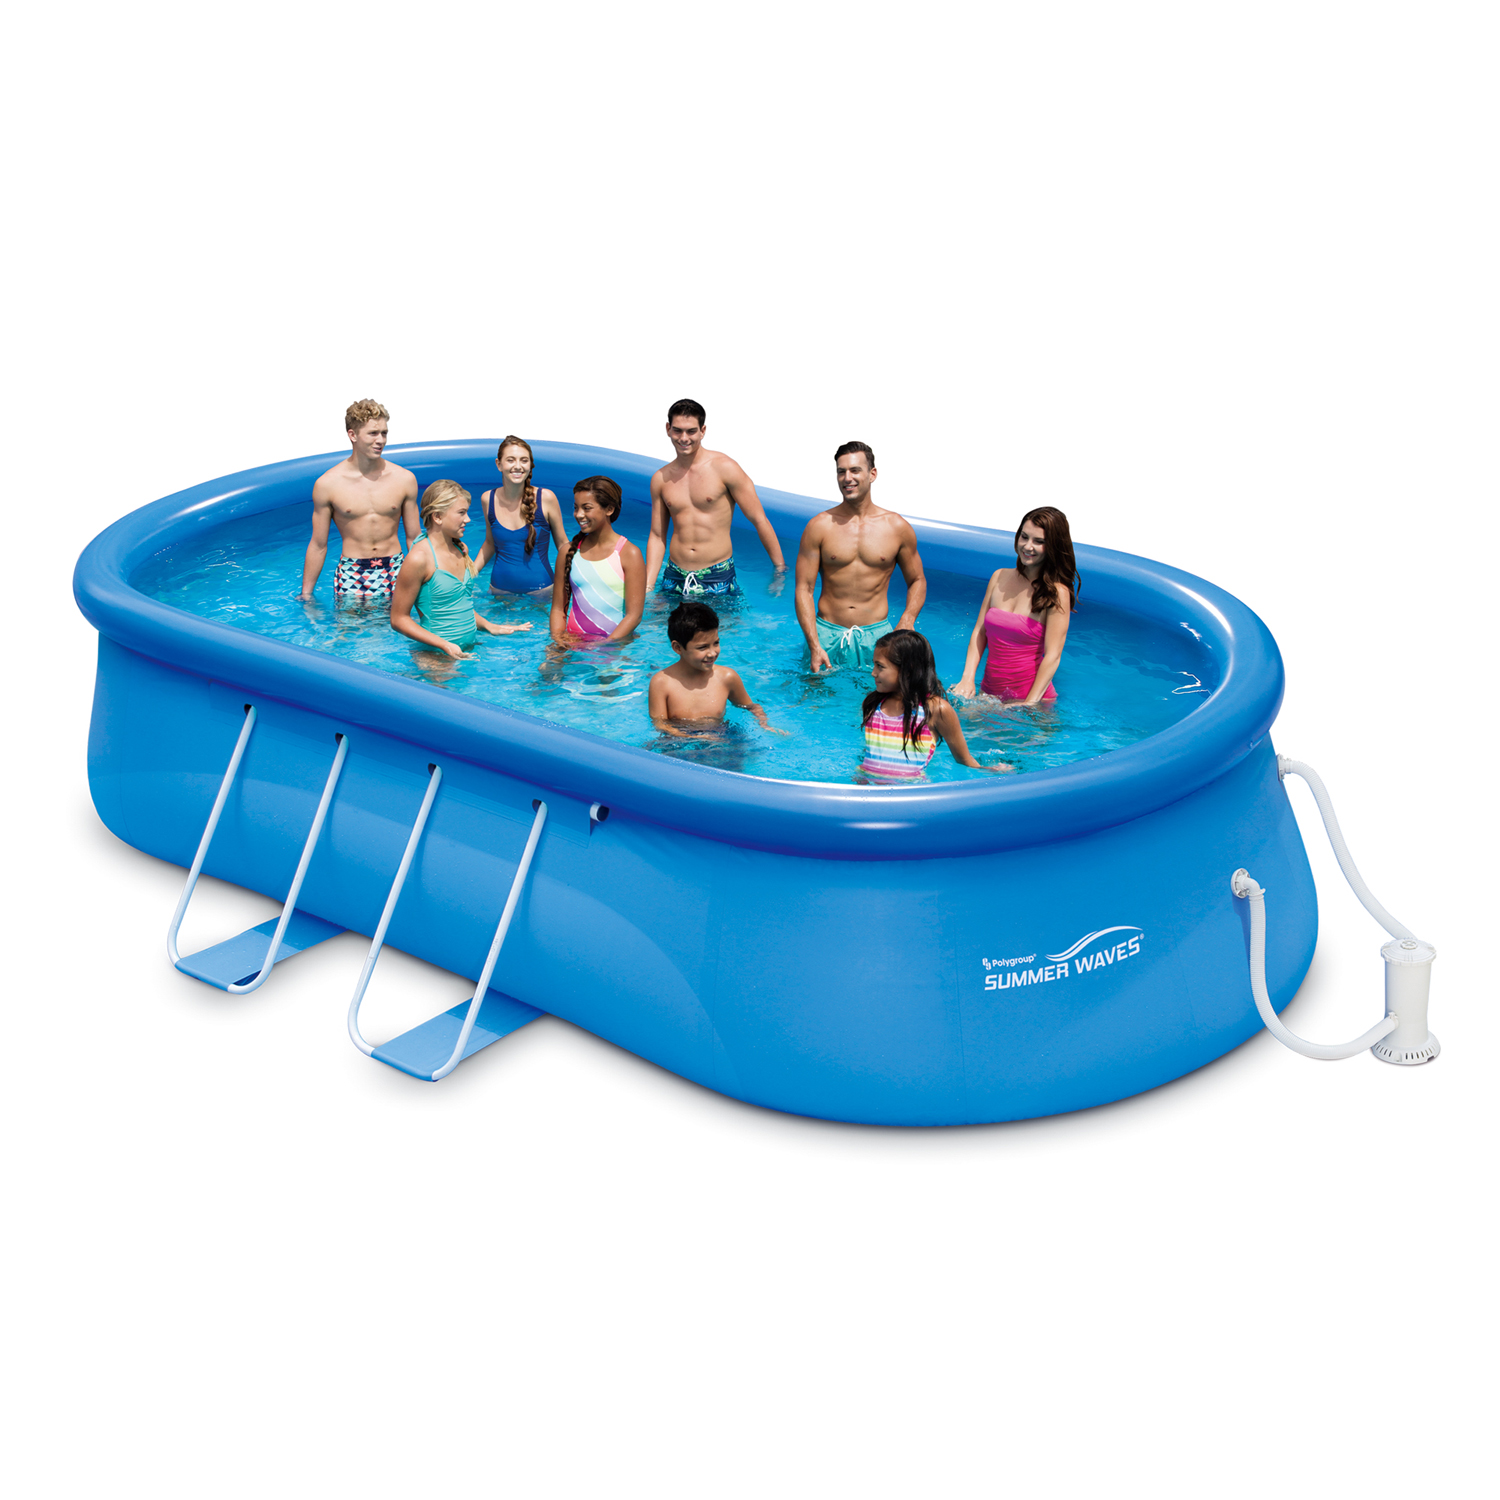 "Summer Waves 18' x 10' 42"" Quick Set Oval Frame Above Ground Swimming Pool with Filter Pump System And Deluxe Accessory Set"